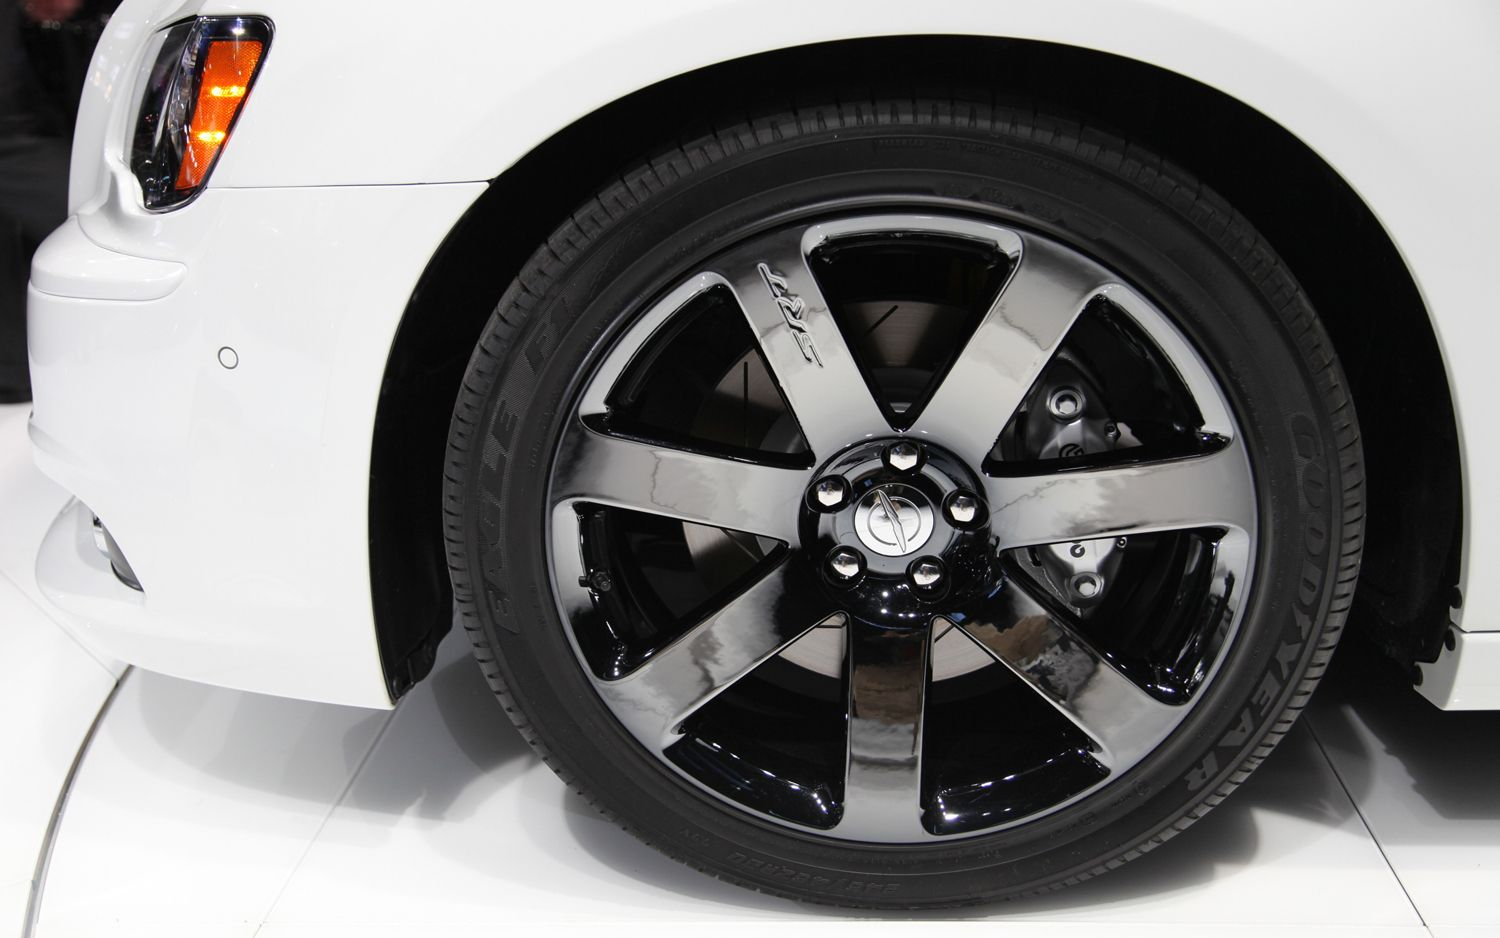 2014 Jeep Grand Cherokee SRT8 Wheels